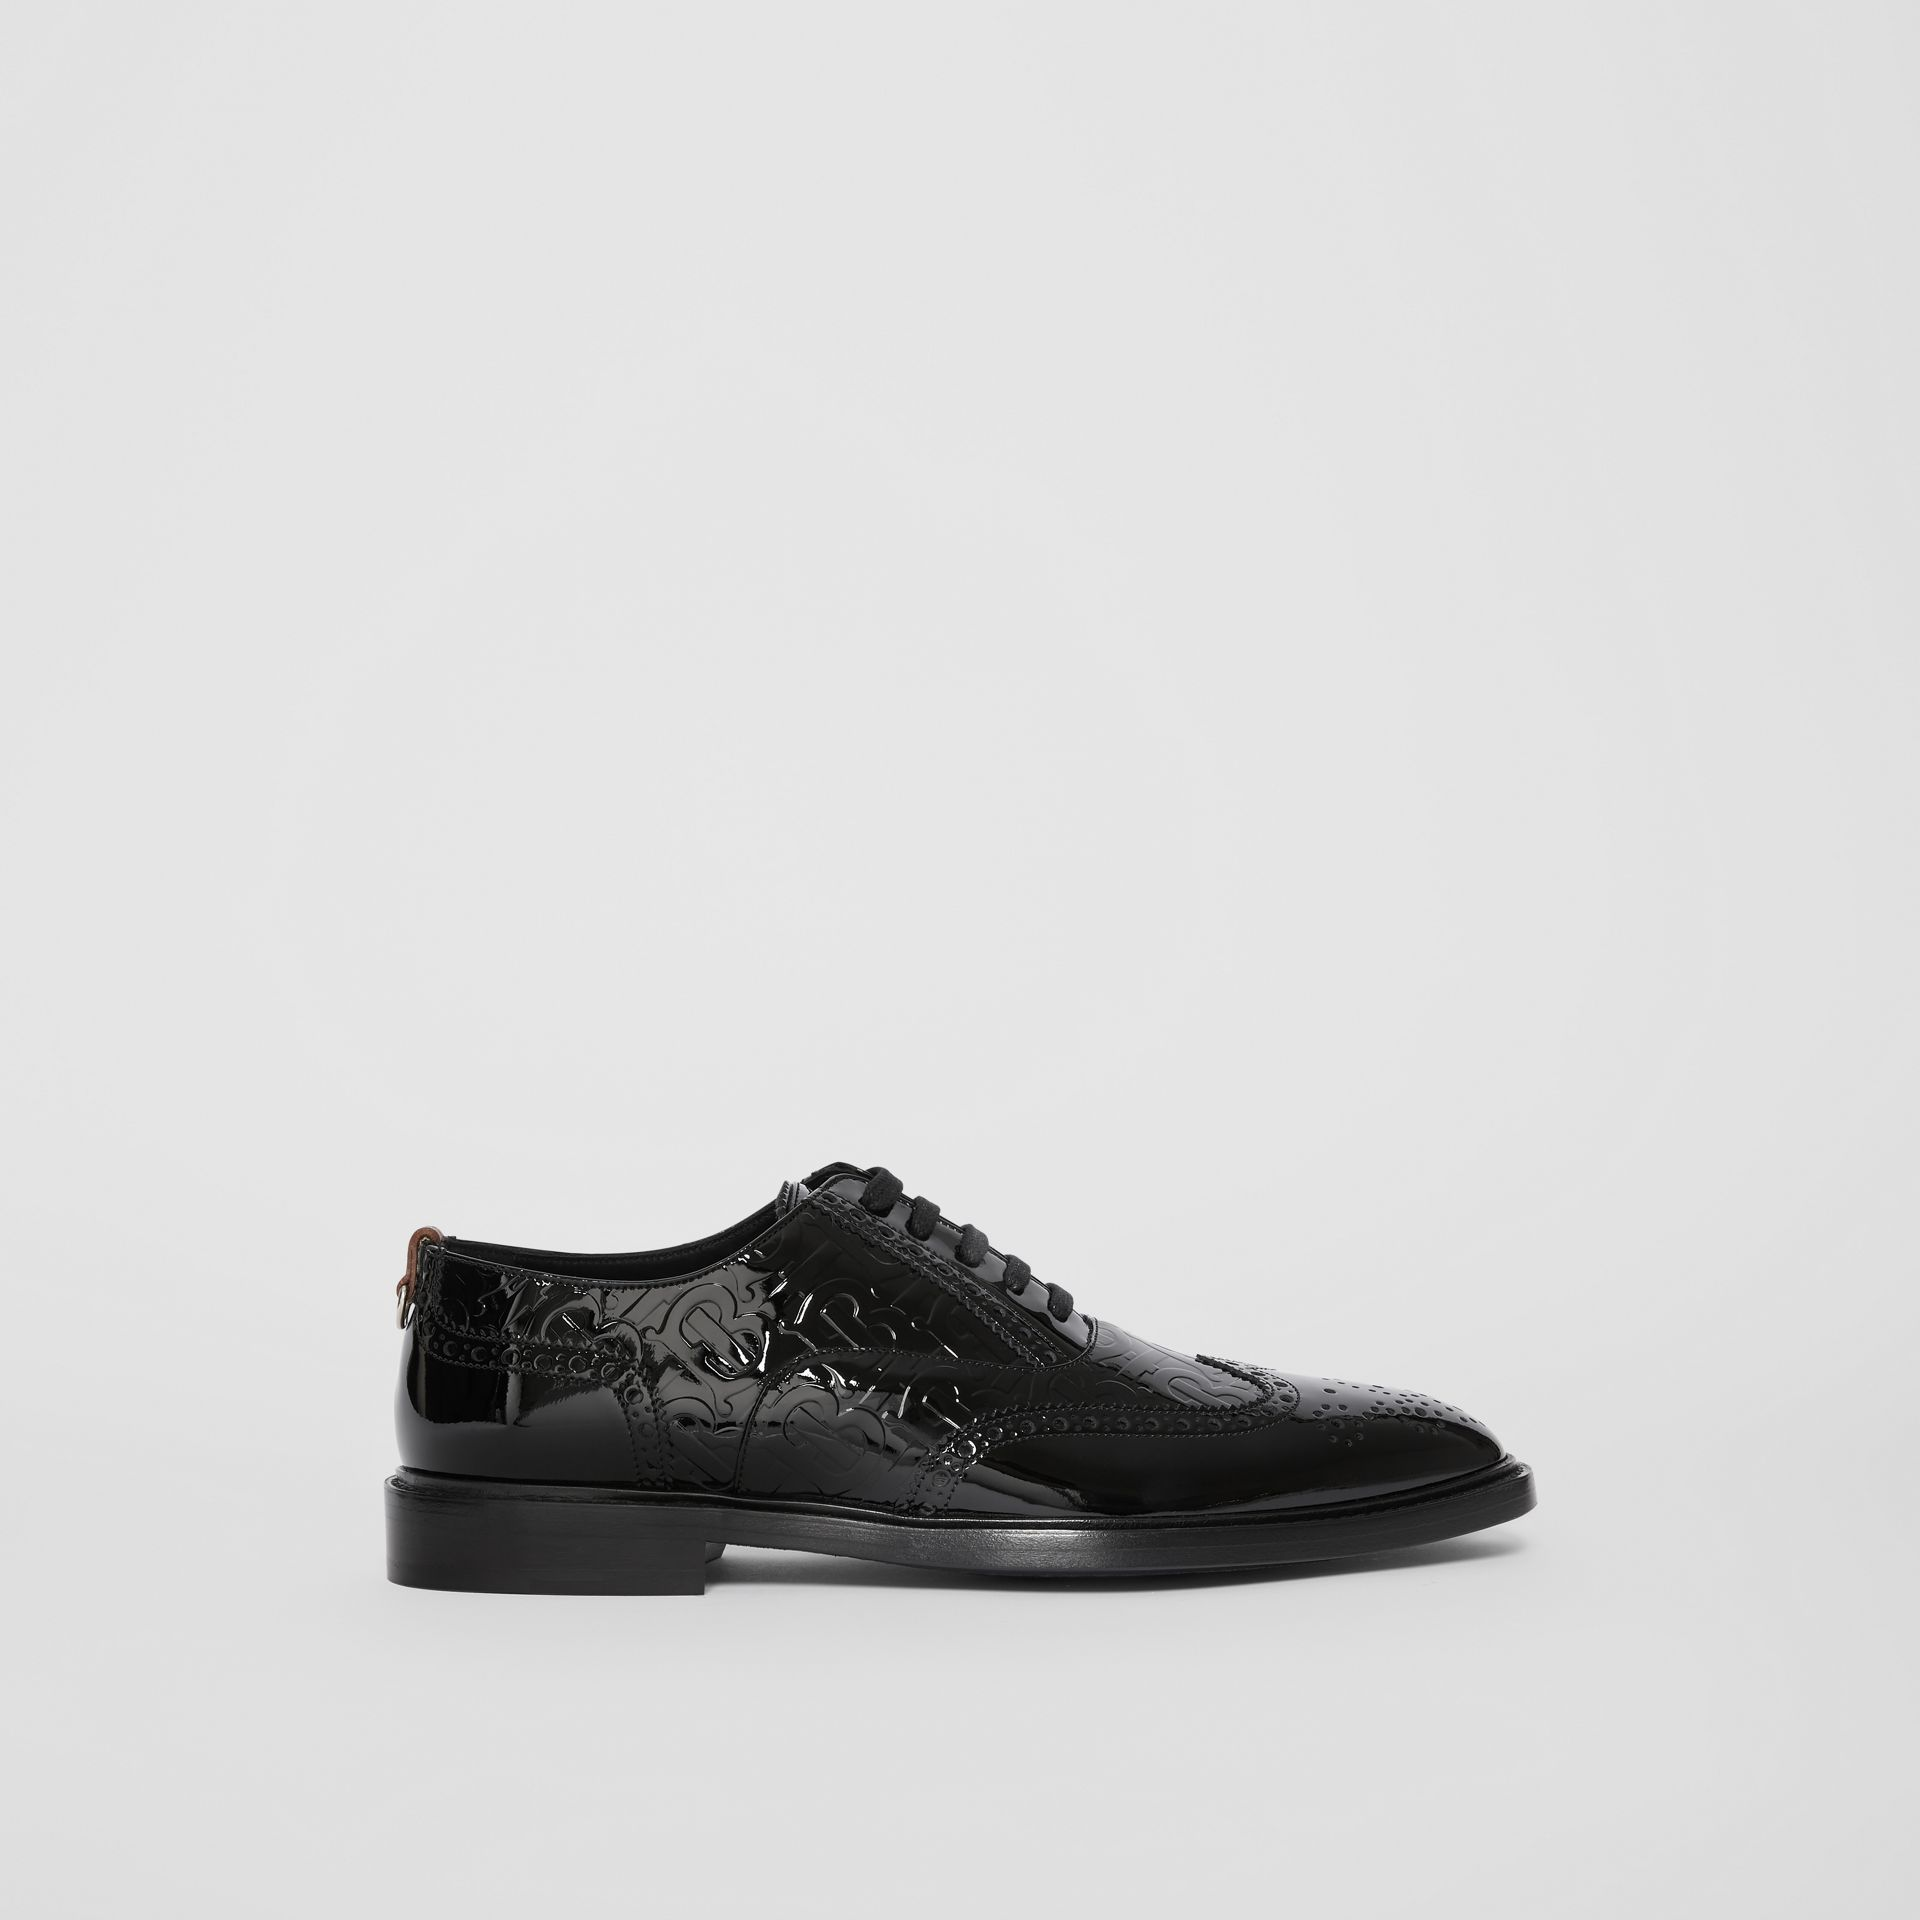 D-ring Detail Monogram Patent Leather Brogues in Black - Men | Burberry United Kingdom - gallery image 5